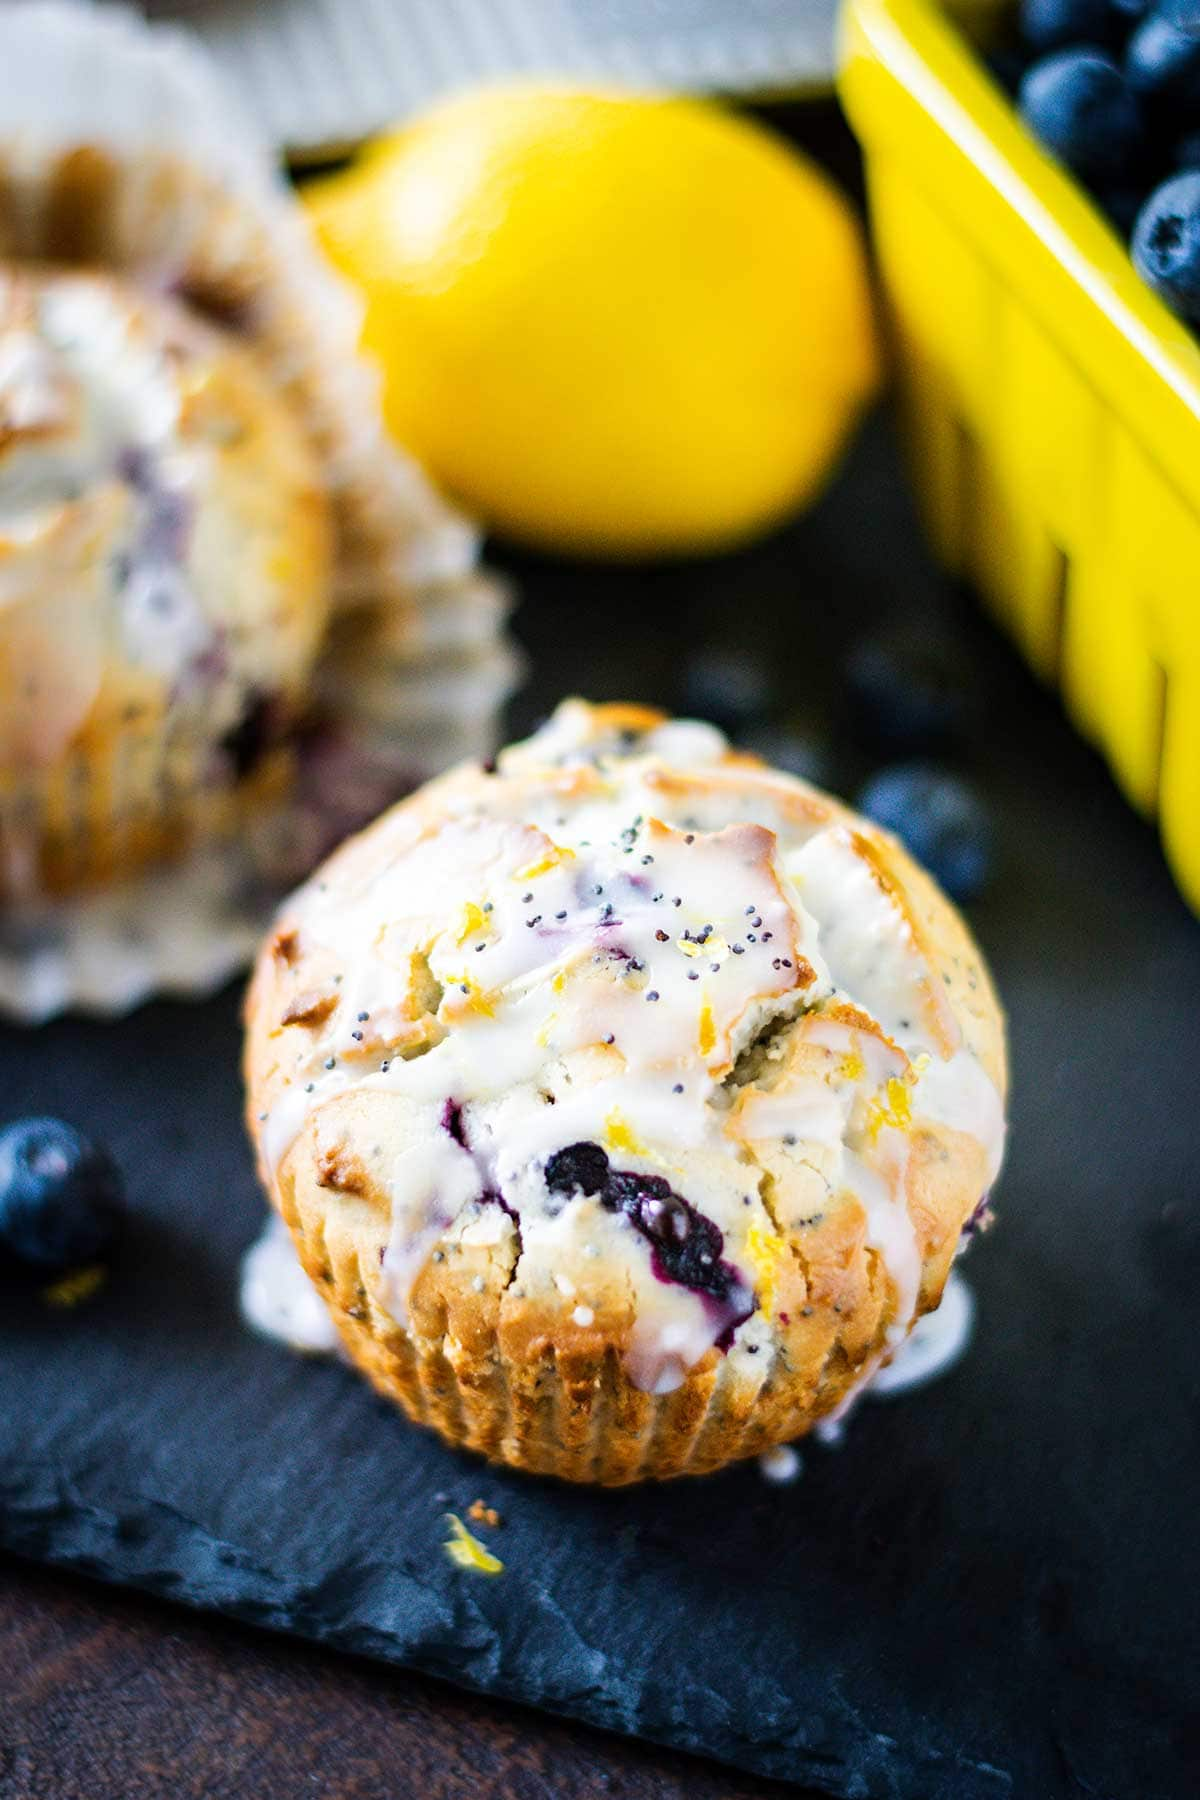 Blueberry lemon poppy seed muffin on a black tray with blueberries in the background.